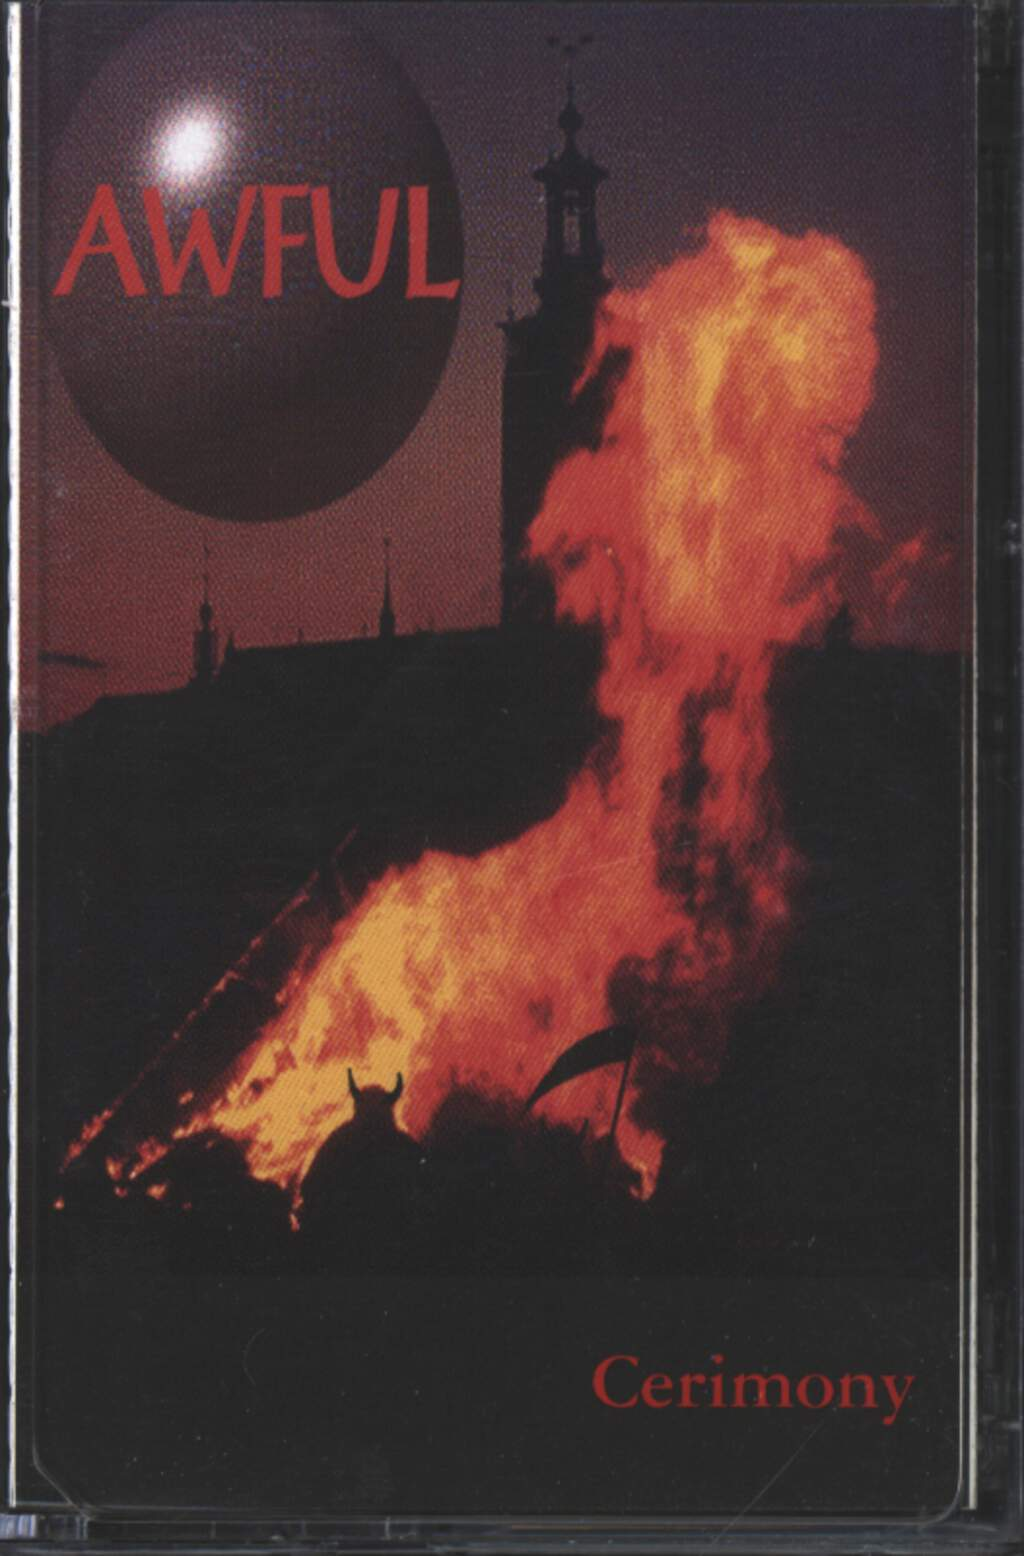 Awful: Cerimony, Compact Cassette